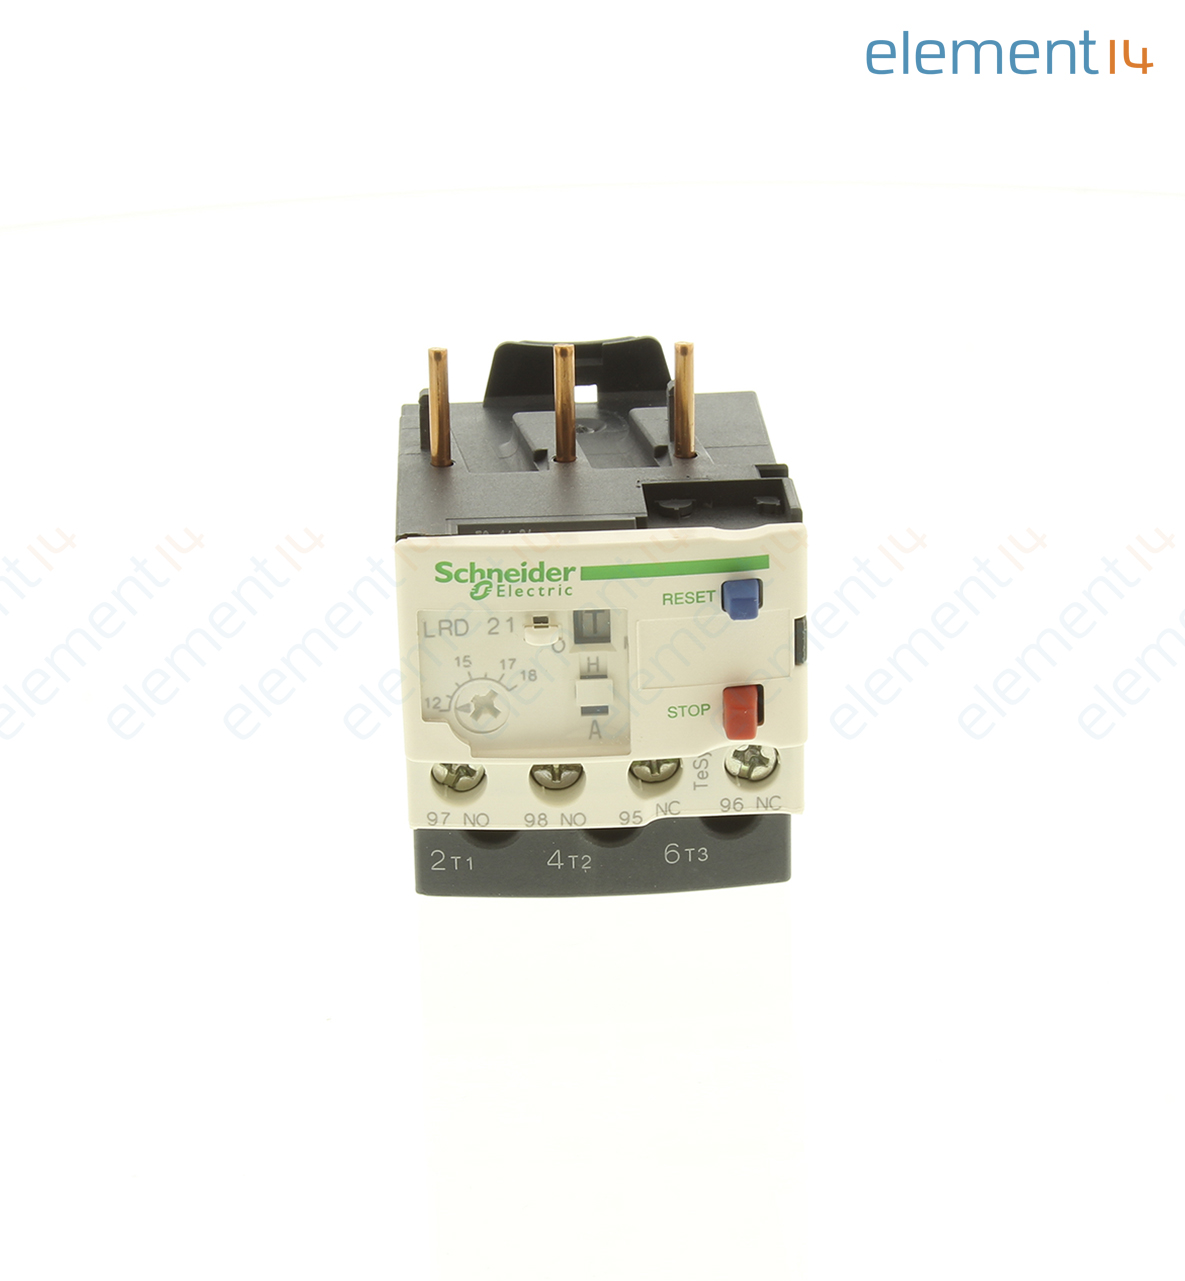 lrd21 schneider electric electronic overload controller tesys d add to compare